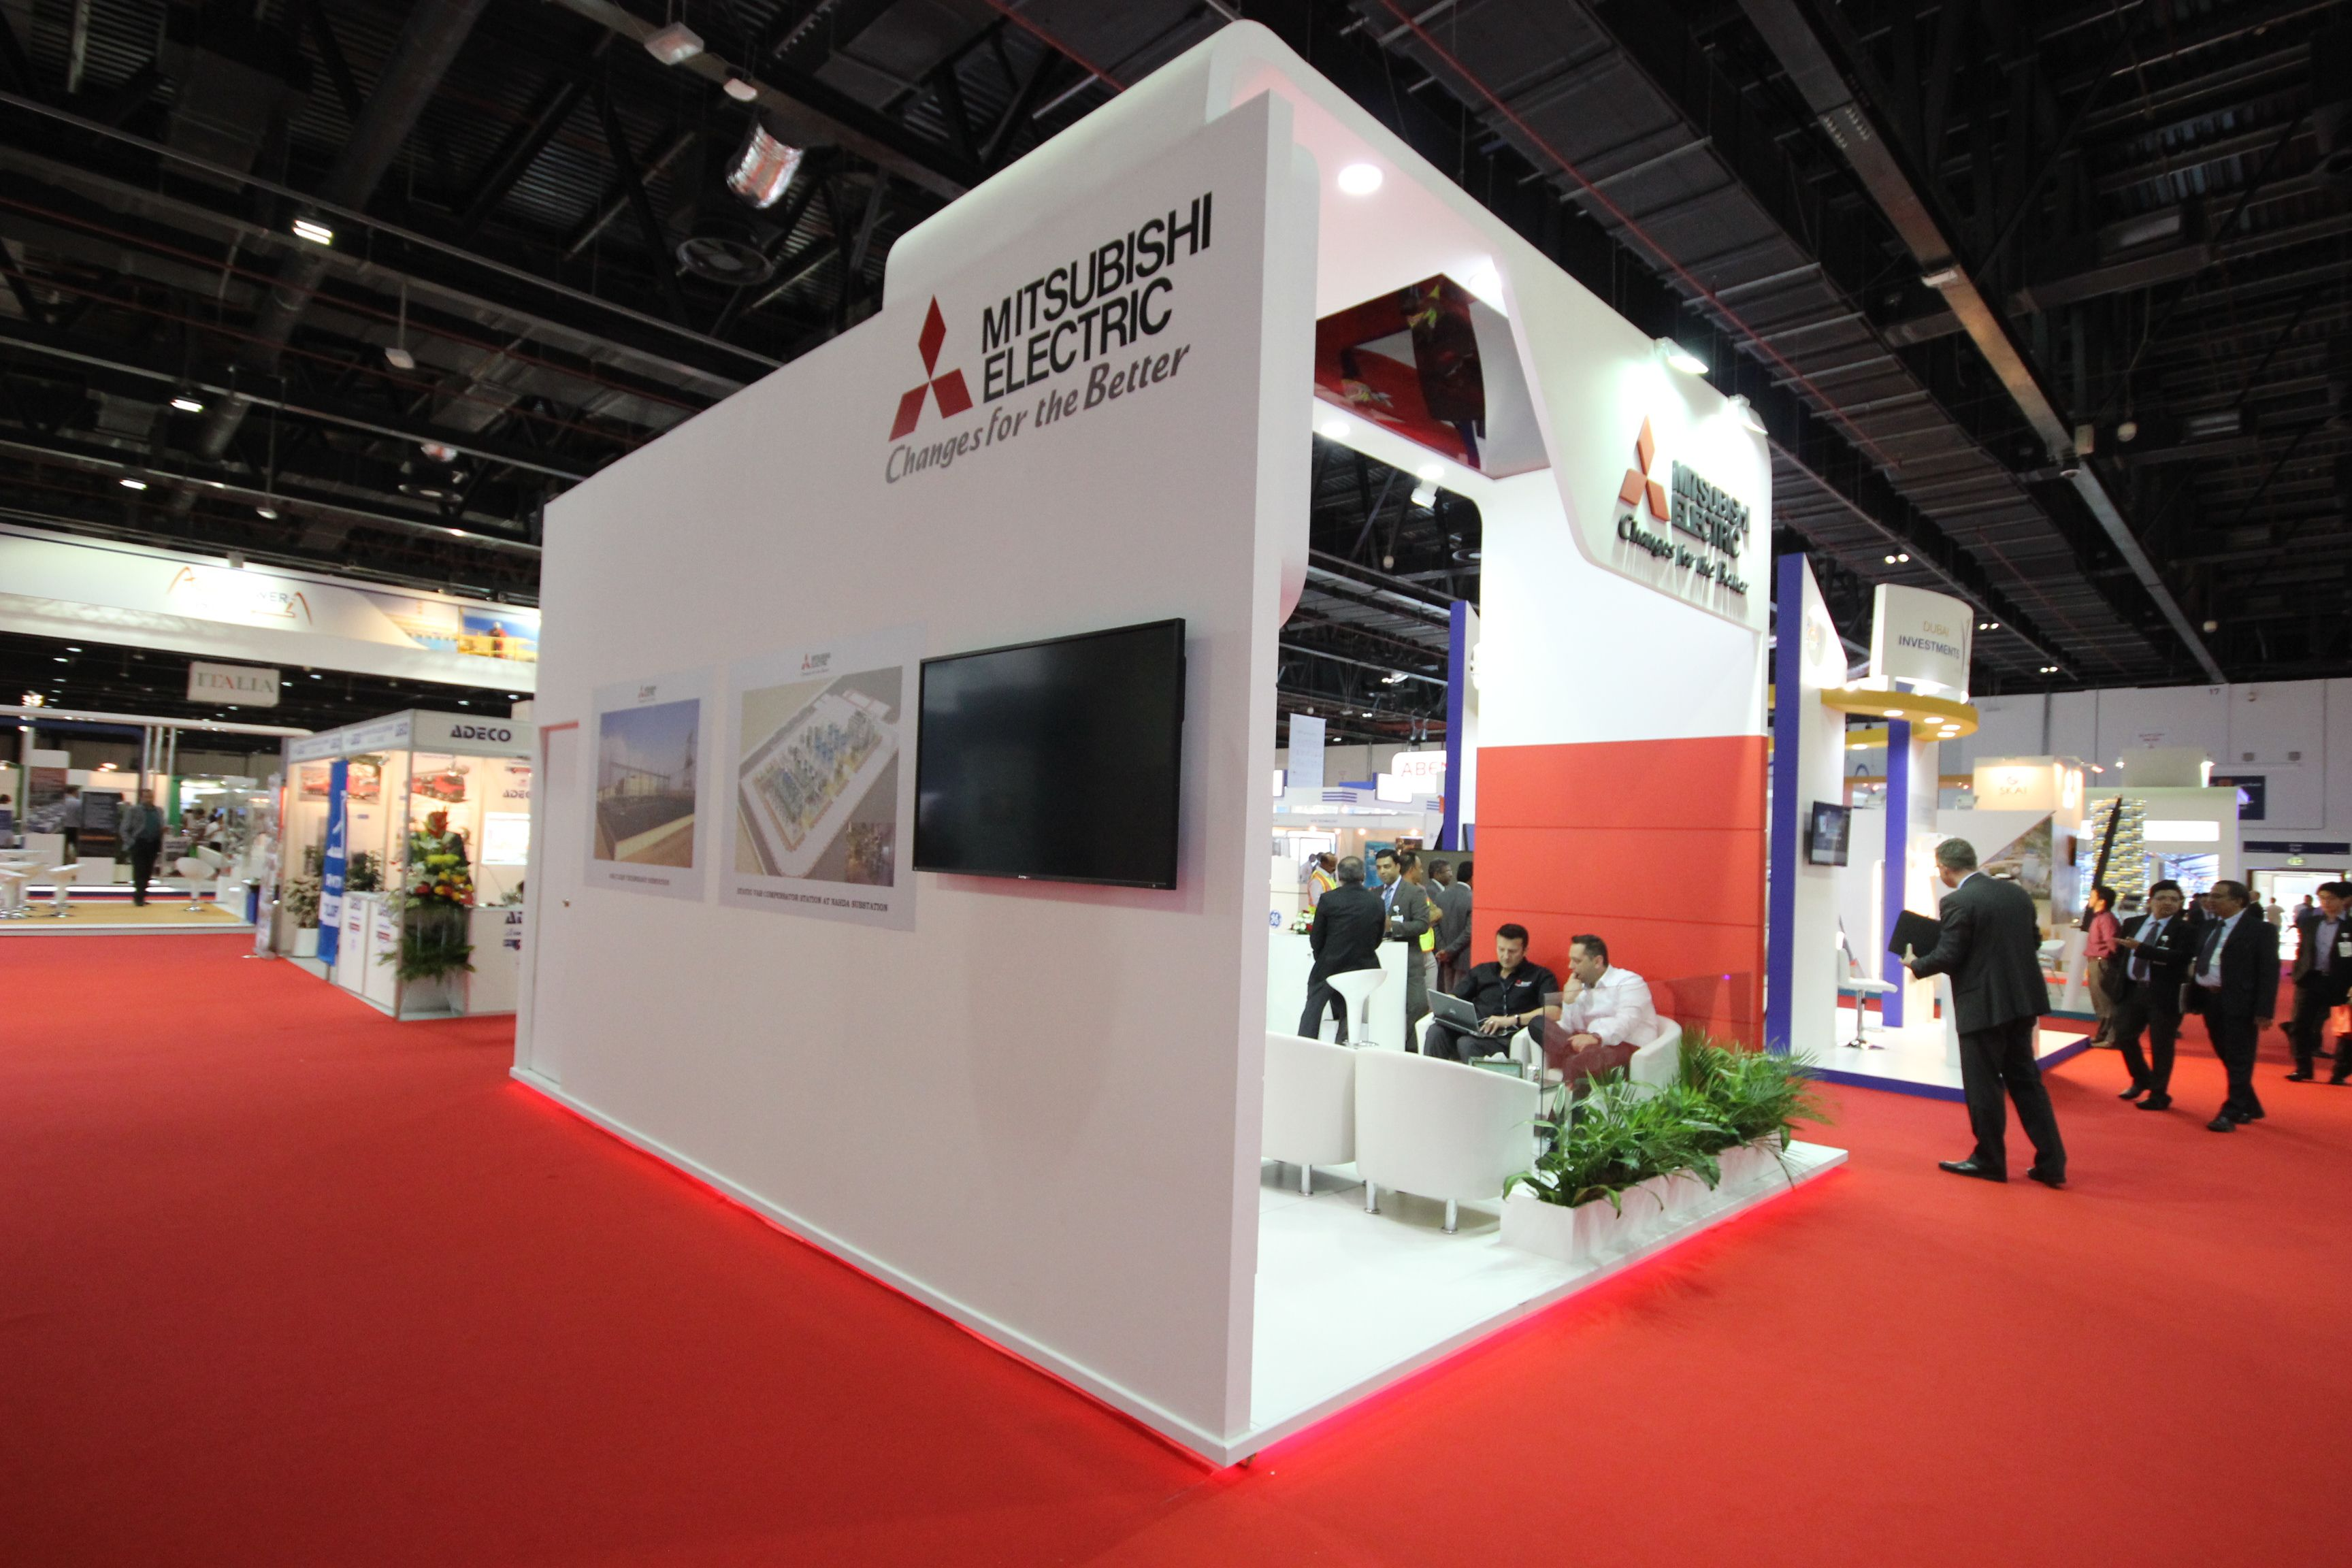 MITSUBISHI ELECTRIC Stand By Mind Spirit Design Dubai WETEX 2015 Check Out Exhibition Construction